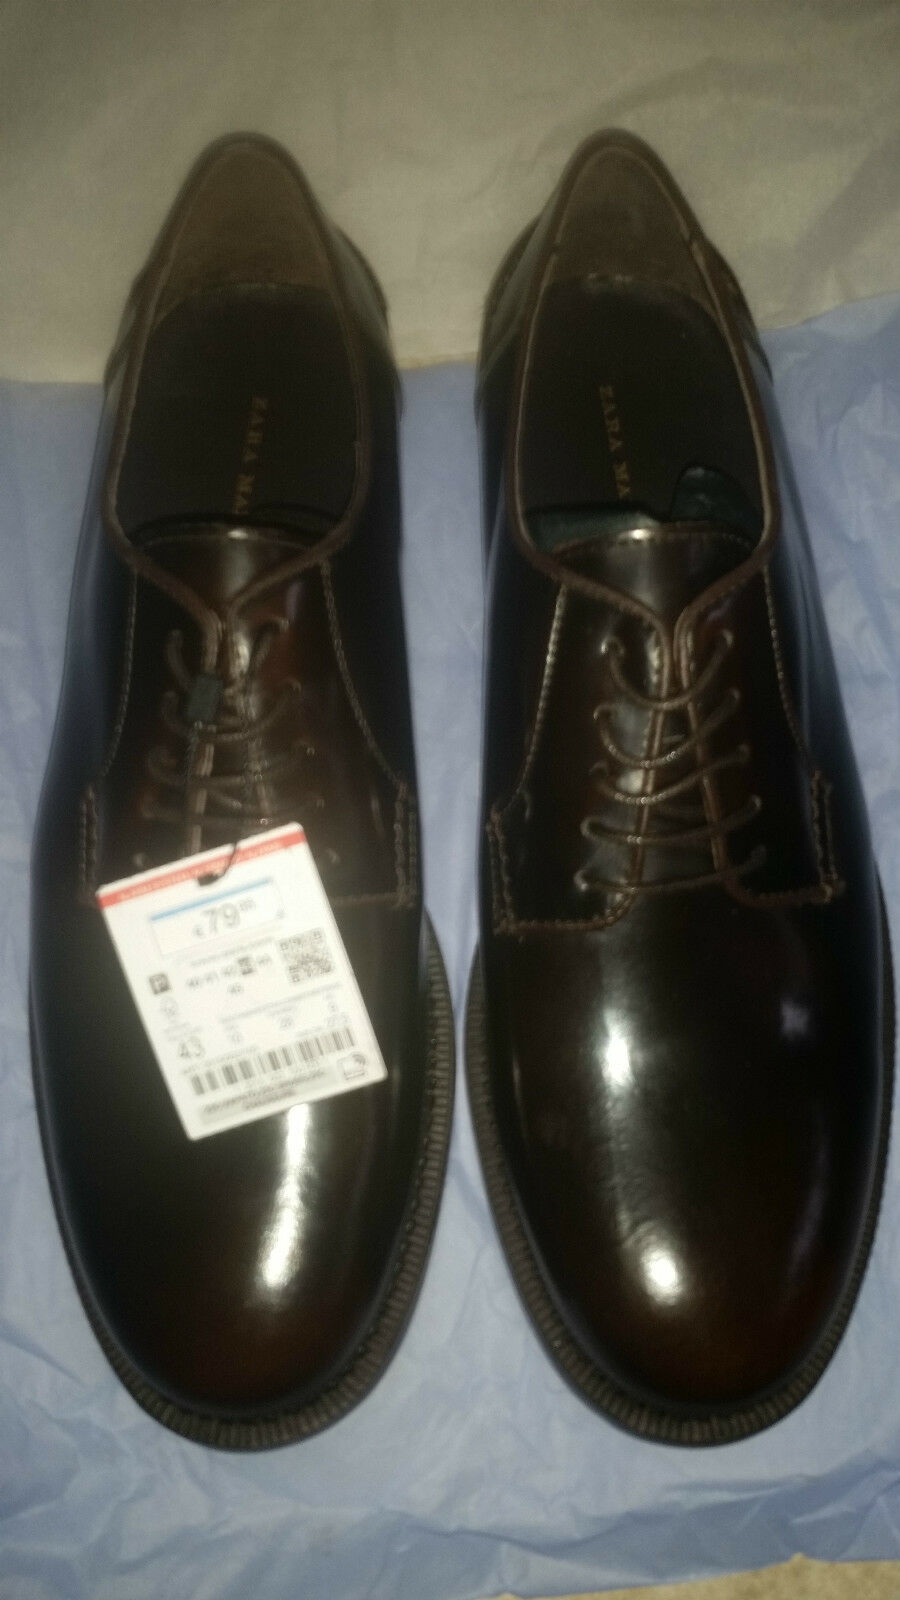 NEW Zara Men's ANTIK LEATHER SHOES    - Sz 10 D (NWOB)